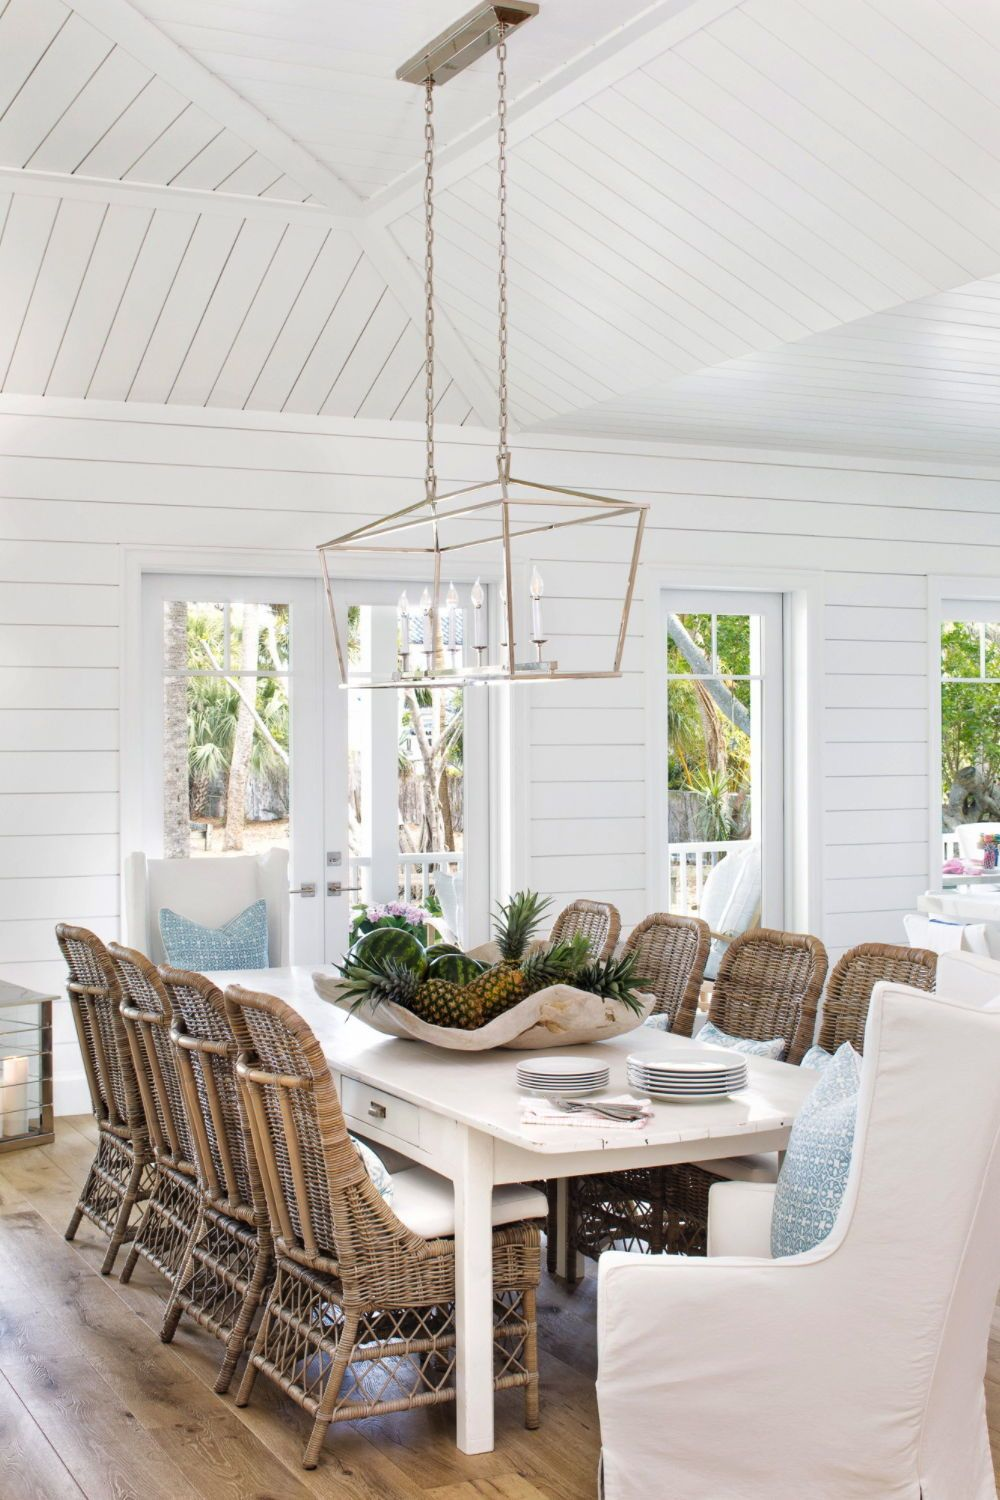 Charming seaside cottage provides a haven of relaxation in Florida